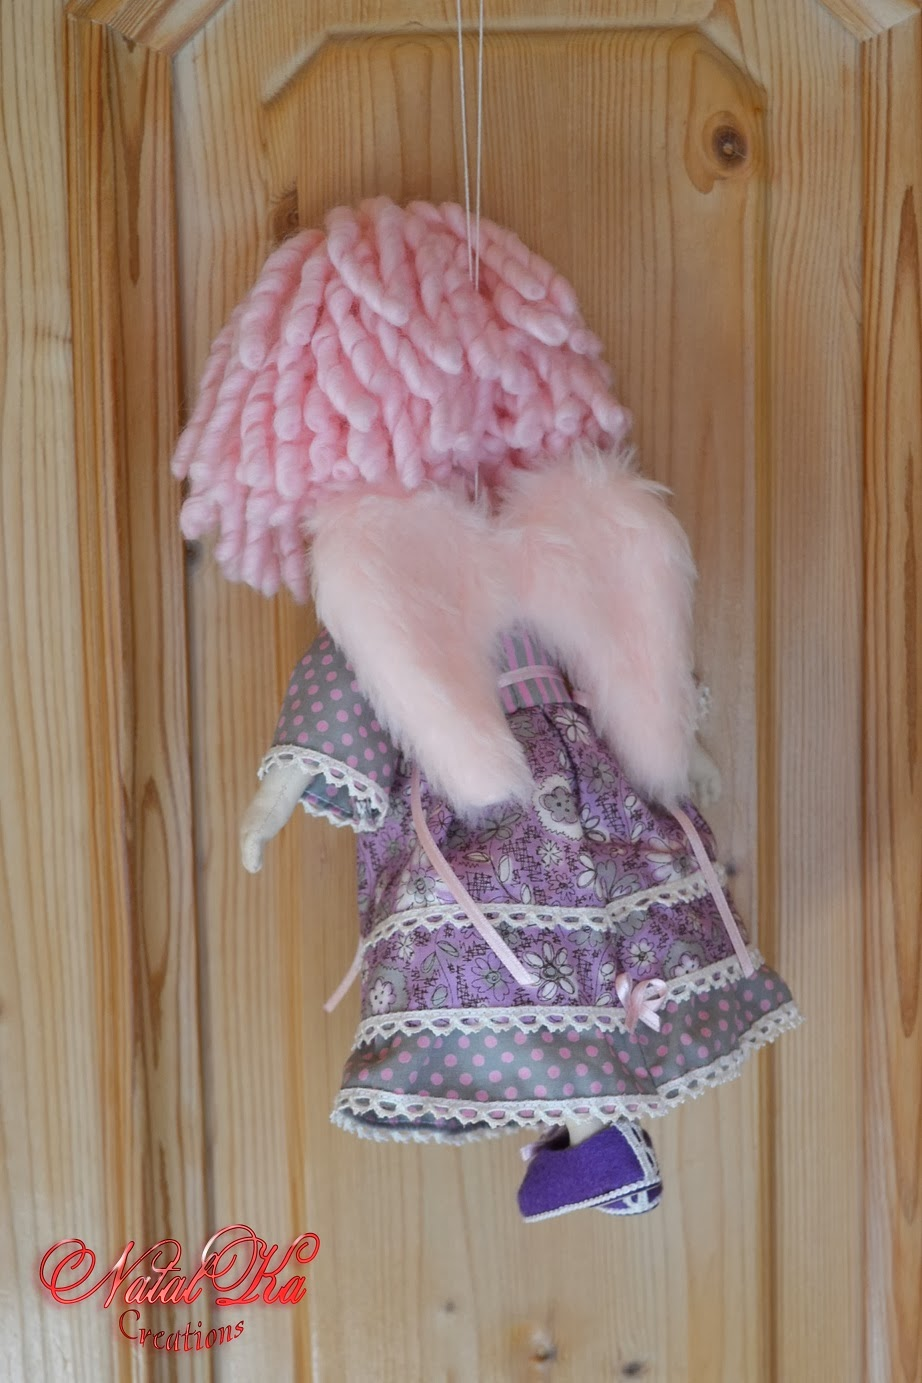 Cloth art doll handmade by NatalKa Creations